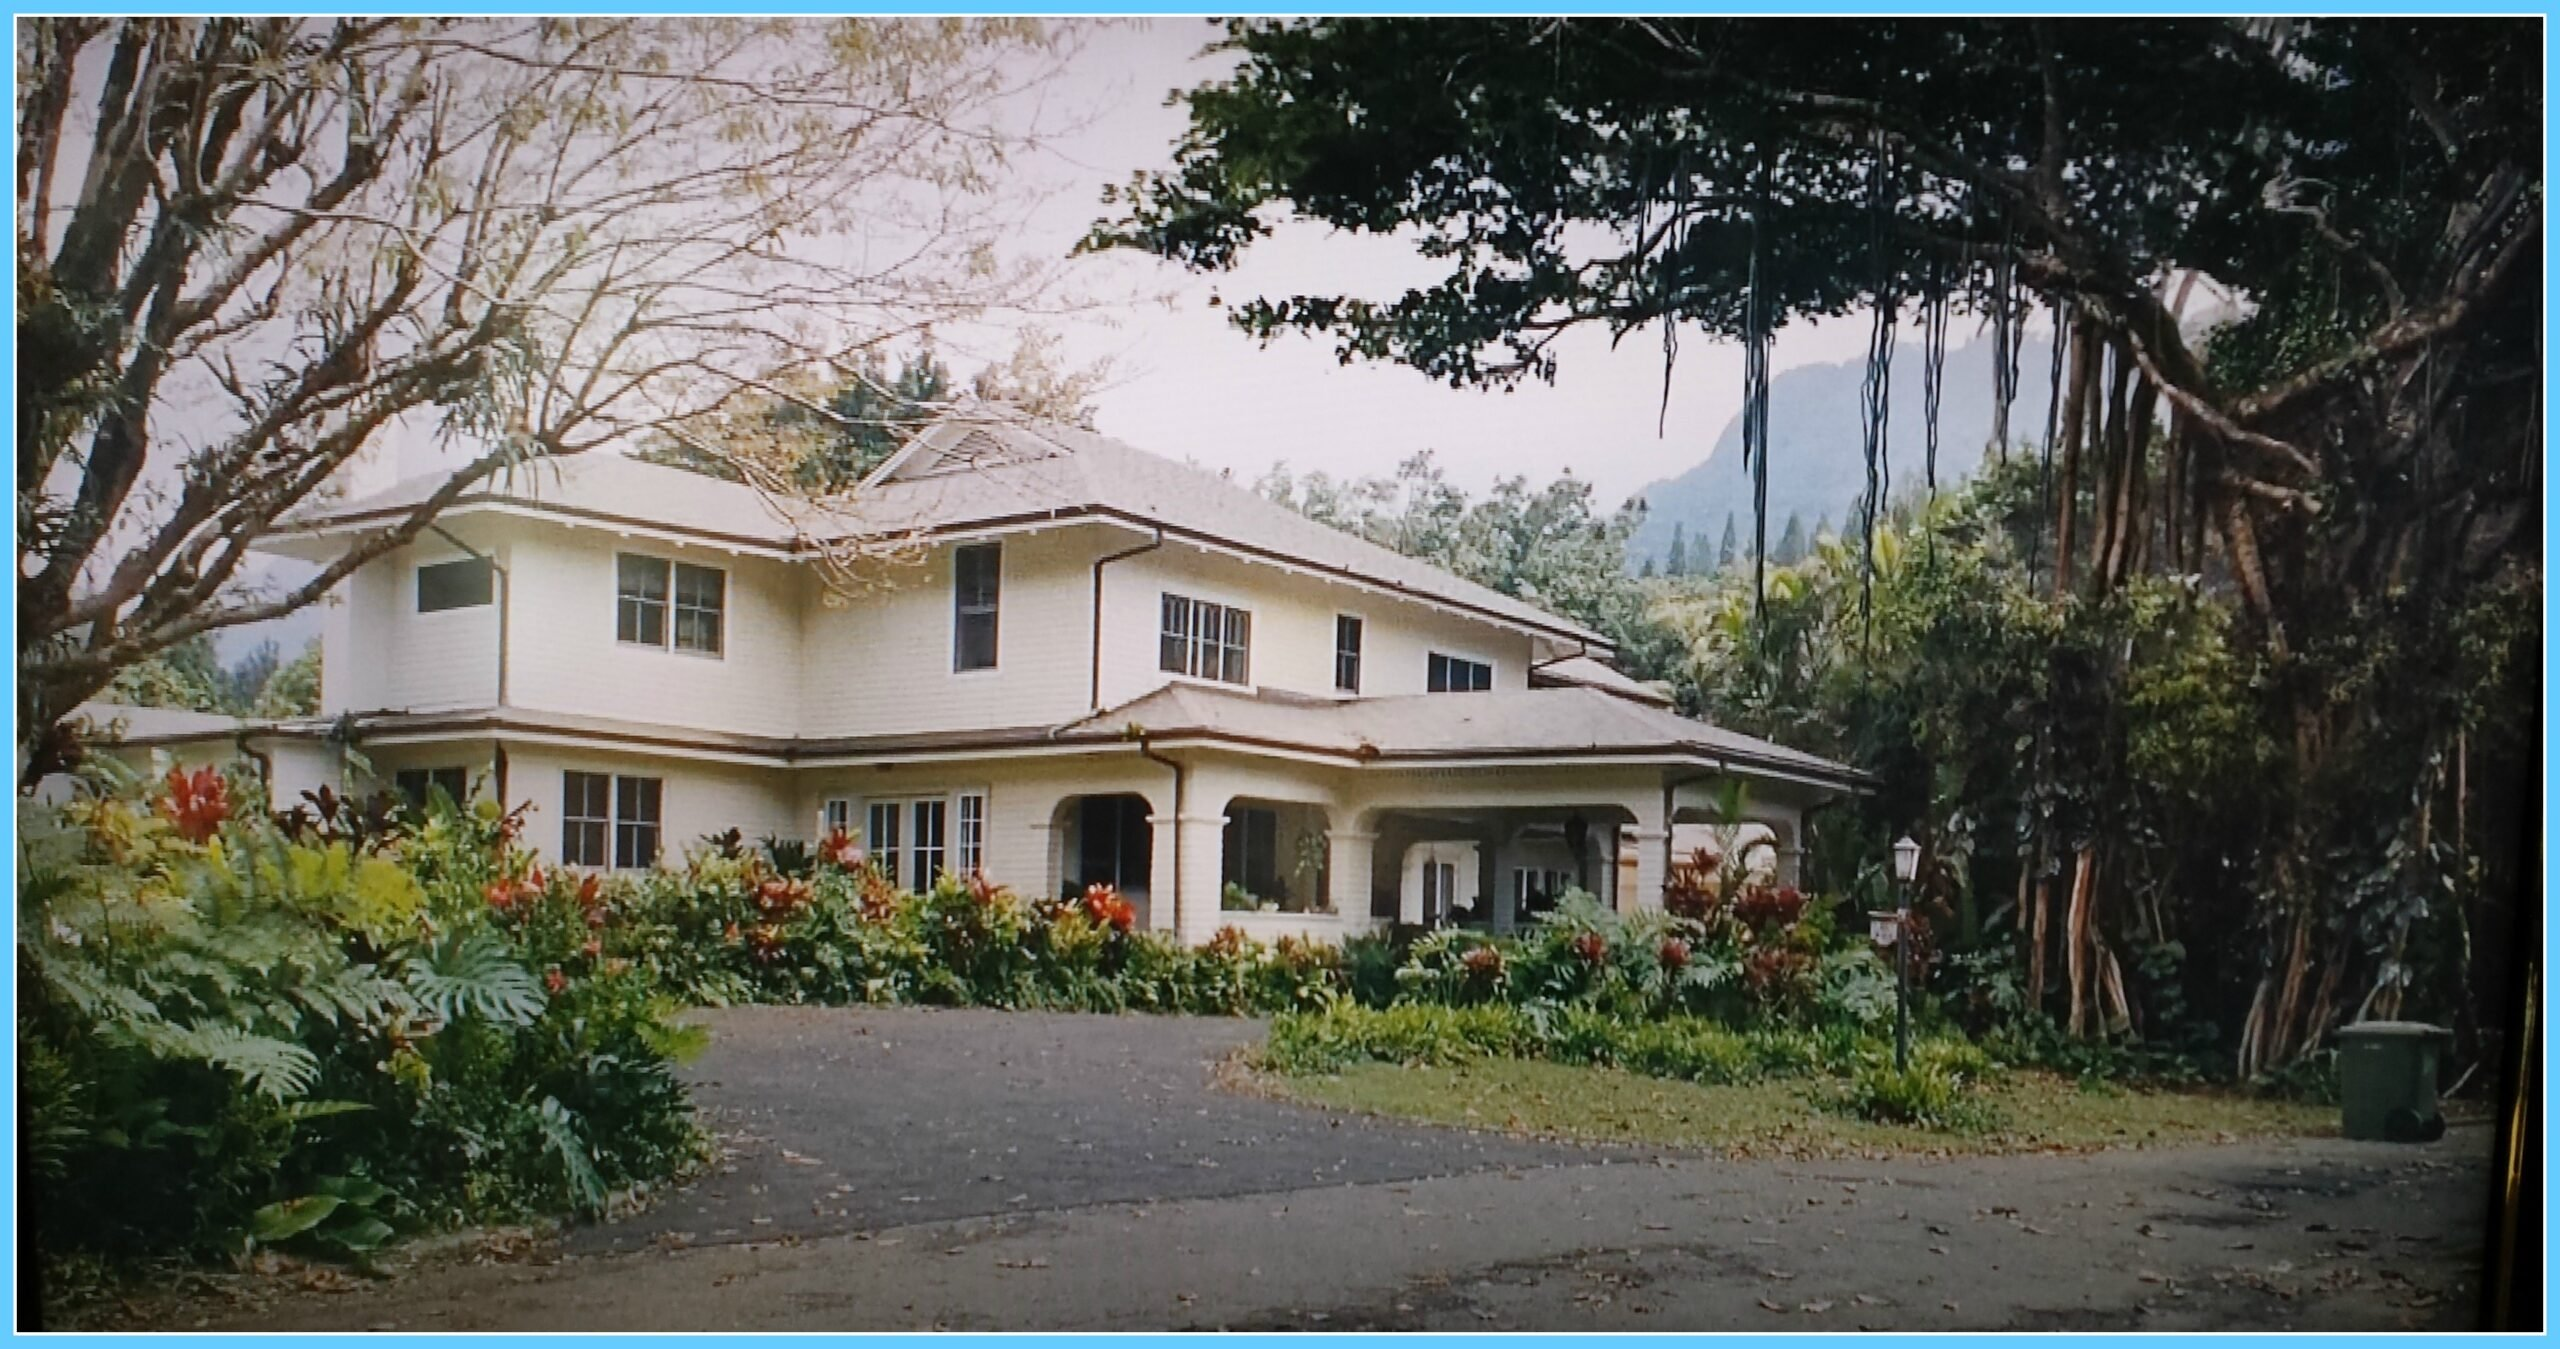 The Descendants Movie Houses – Filming Locations, Photos